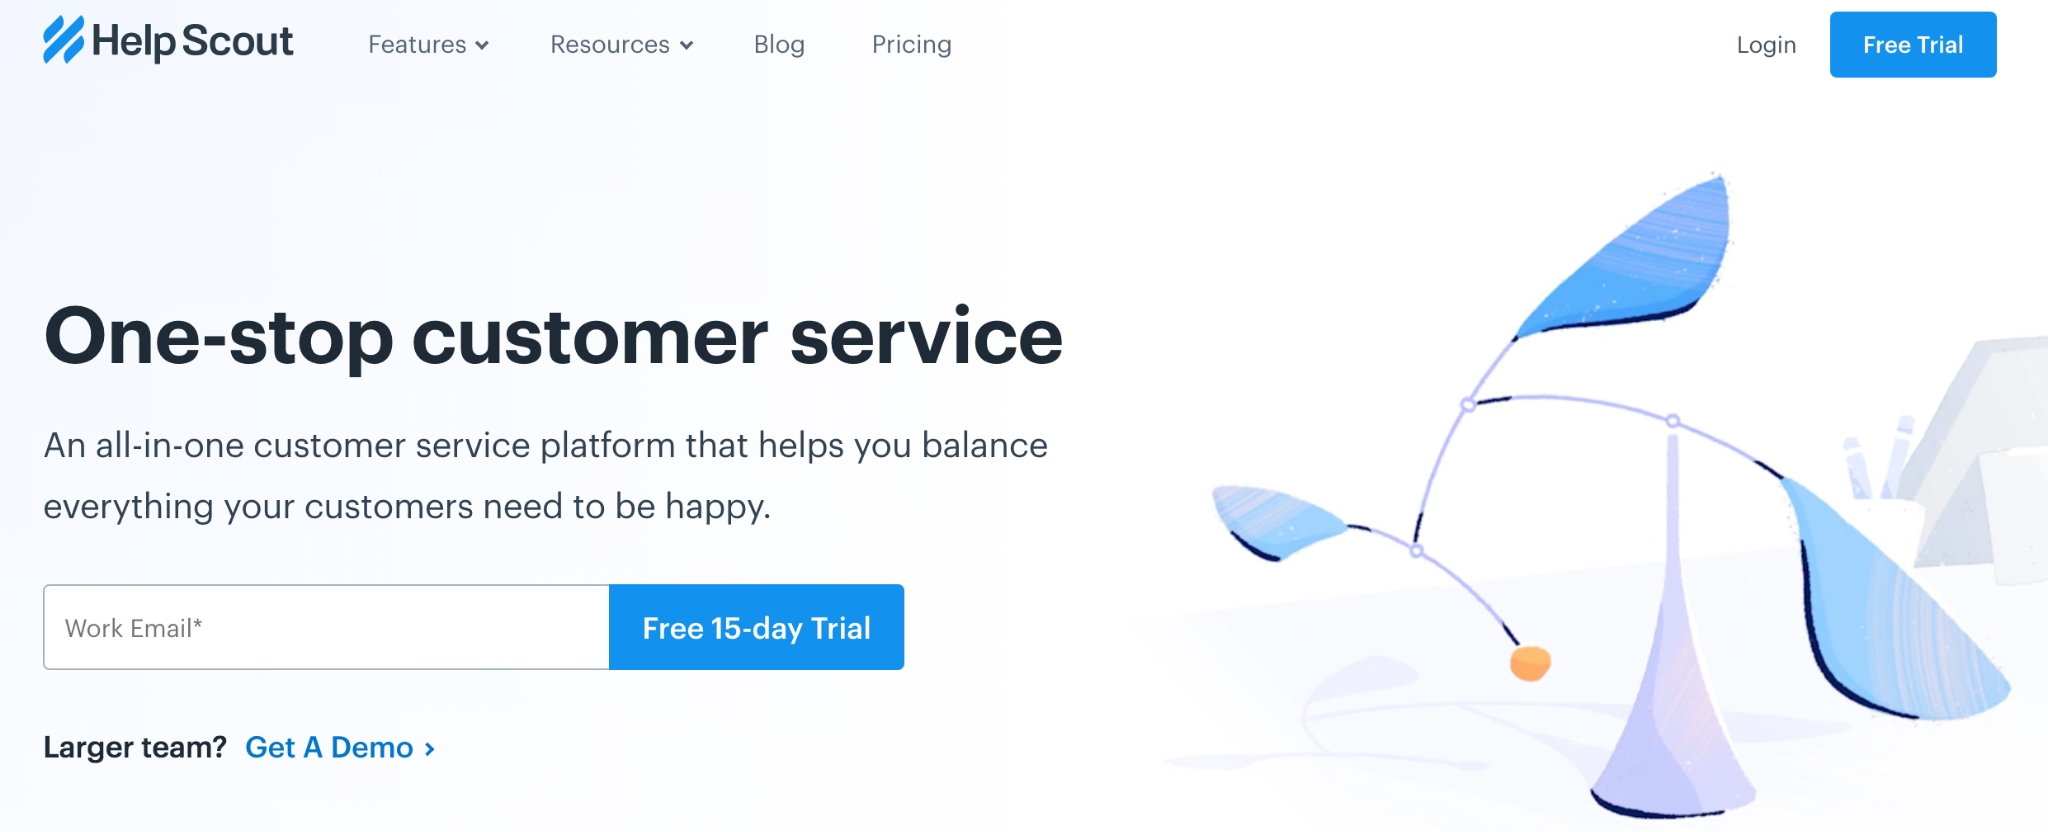 Help Scout: One-stop customer service; an all-in-one customer service platform that helps you balance everything your customers need to be happy.